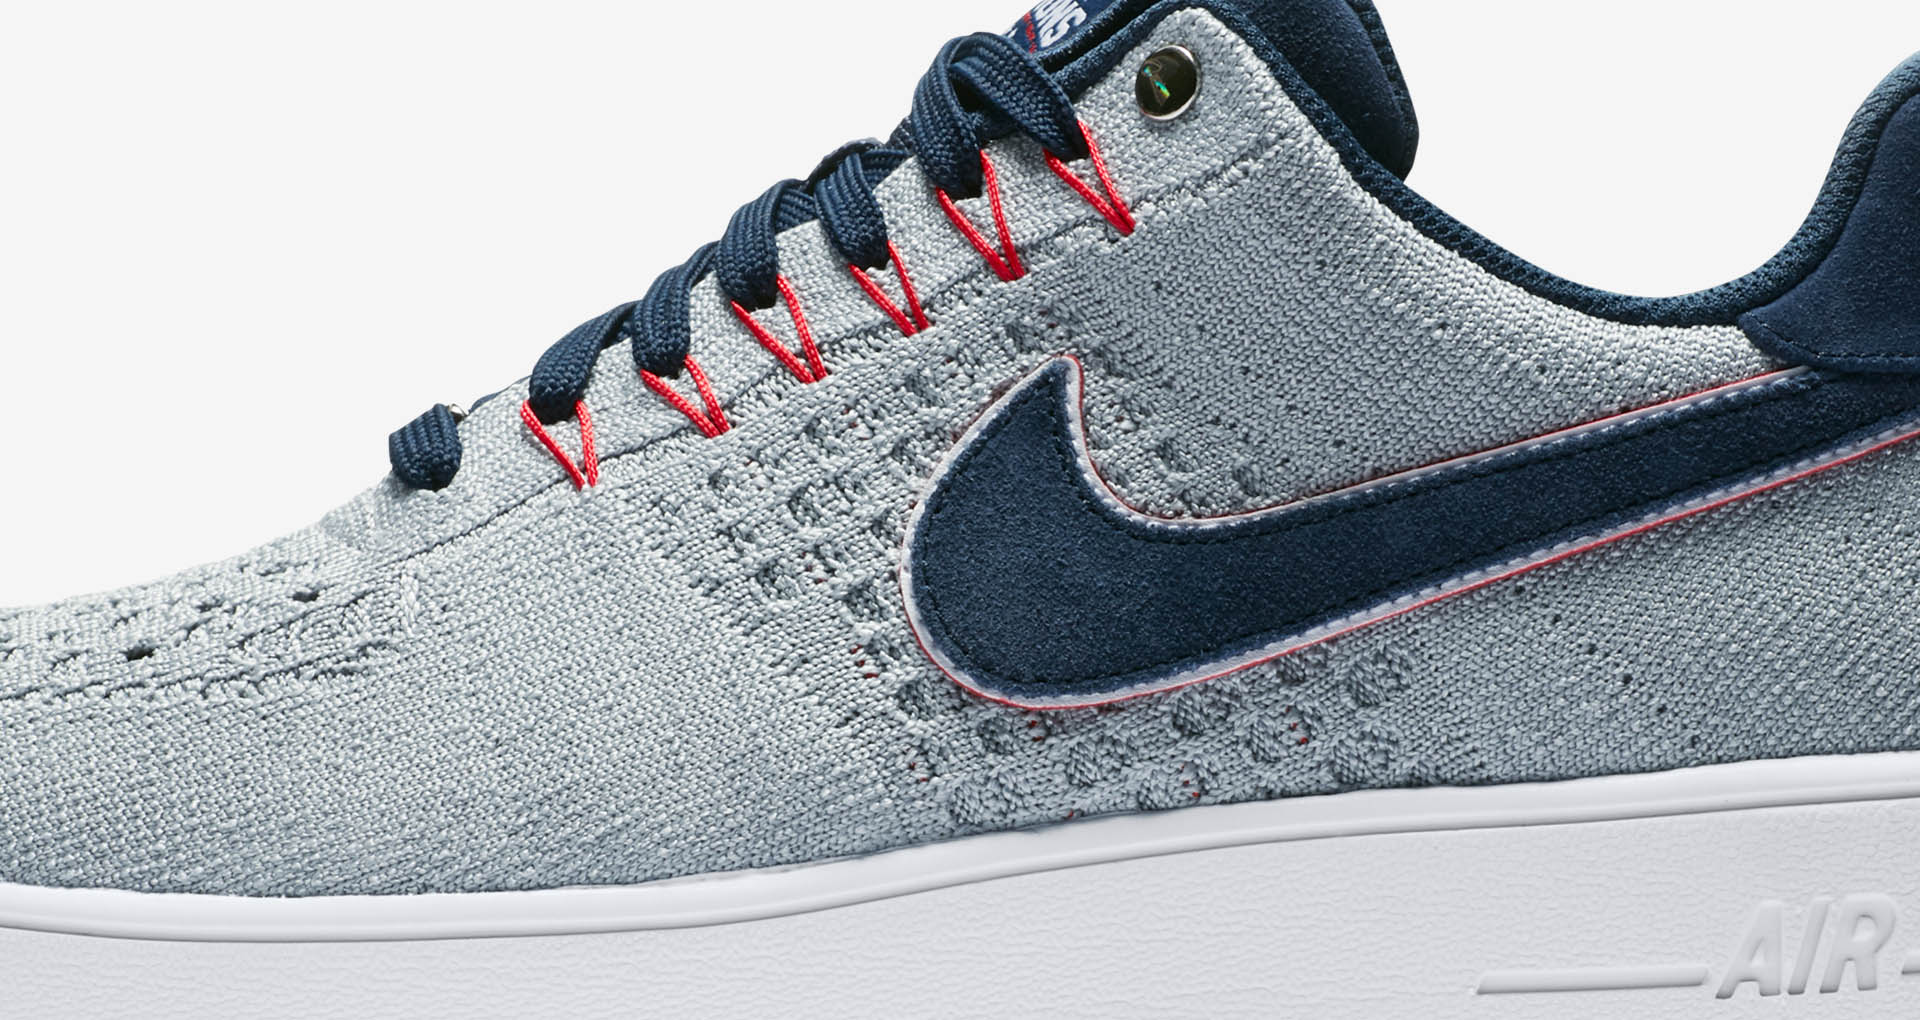 sneakers for cheap 4d941 b0bcc The Patriots Get Their Own Colorway of the Air Force 1 Ultra Flyknit ...